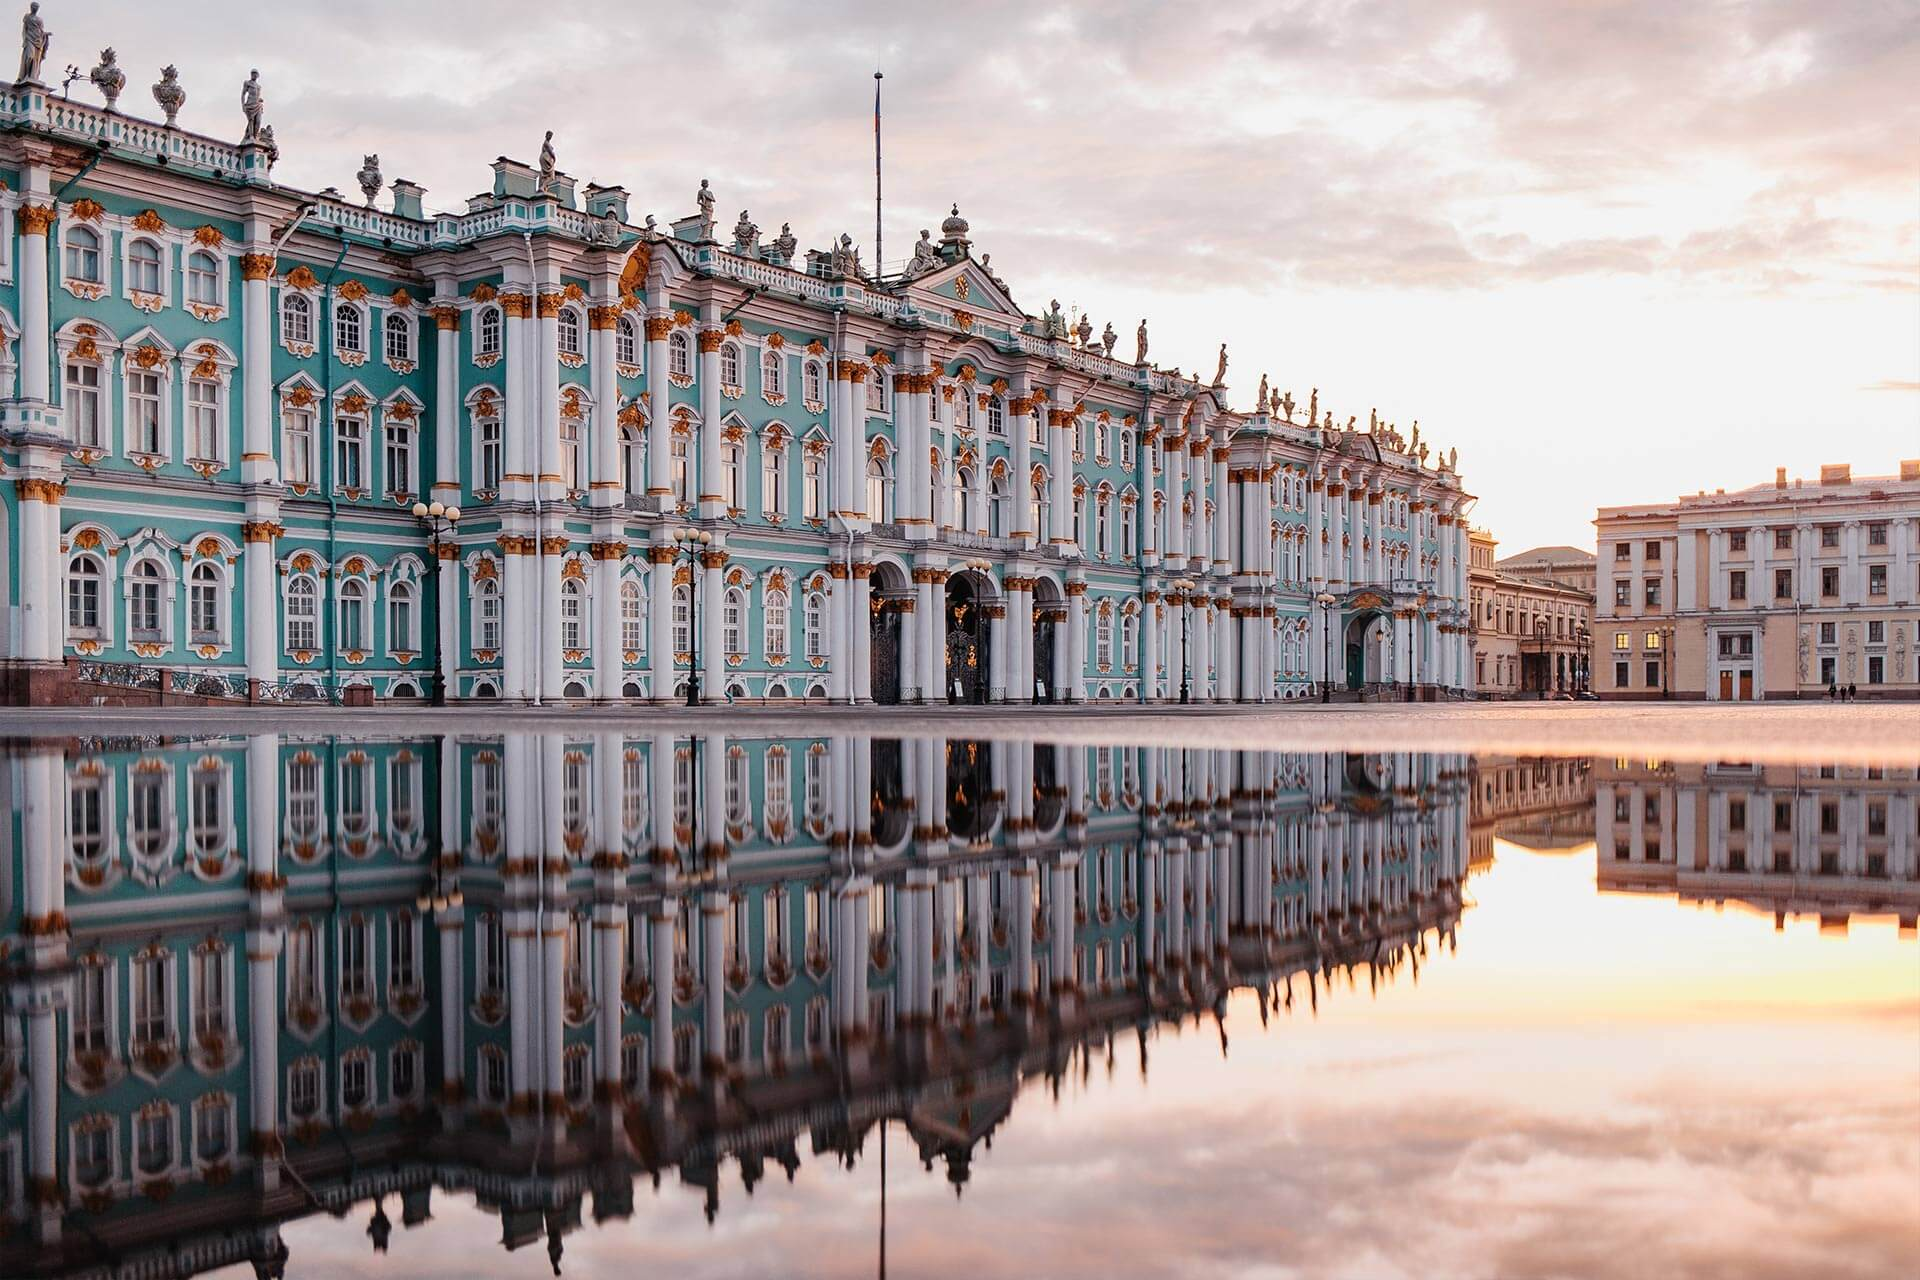 Green and white palace in the Baroque style of mid-18th century Russian art. All the facades are embellished by a two-tier colonnade. Sculptures on the top of the palace, imperial residence. Reflection of the palace in a puddle of water.